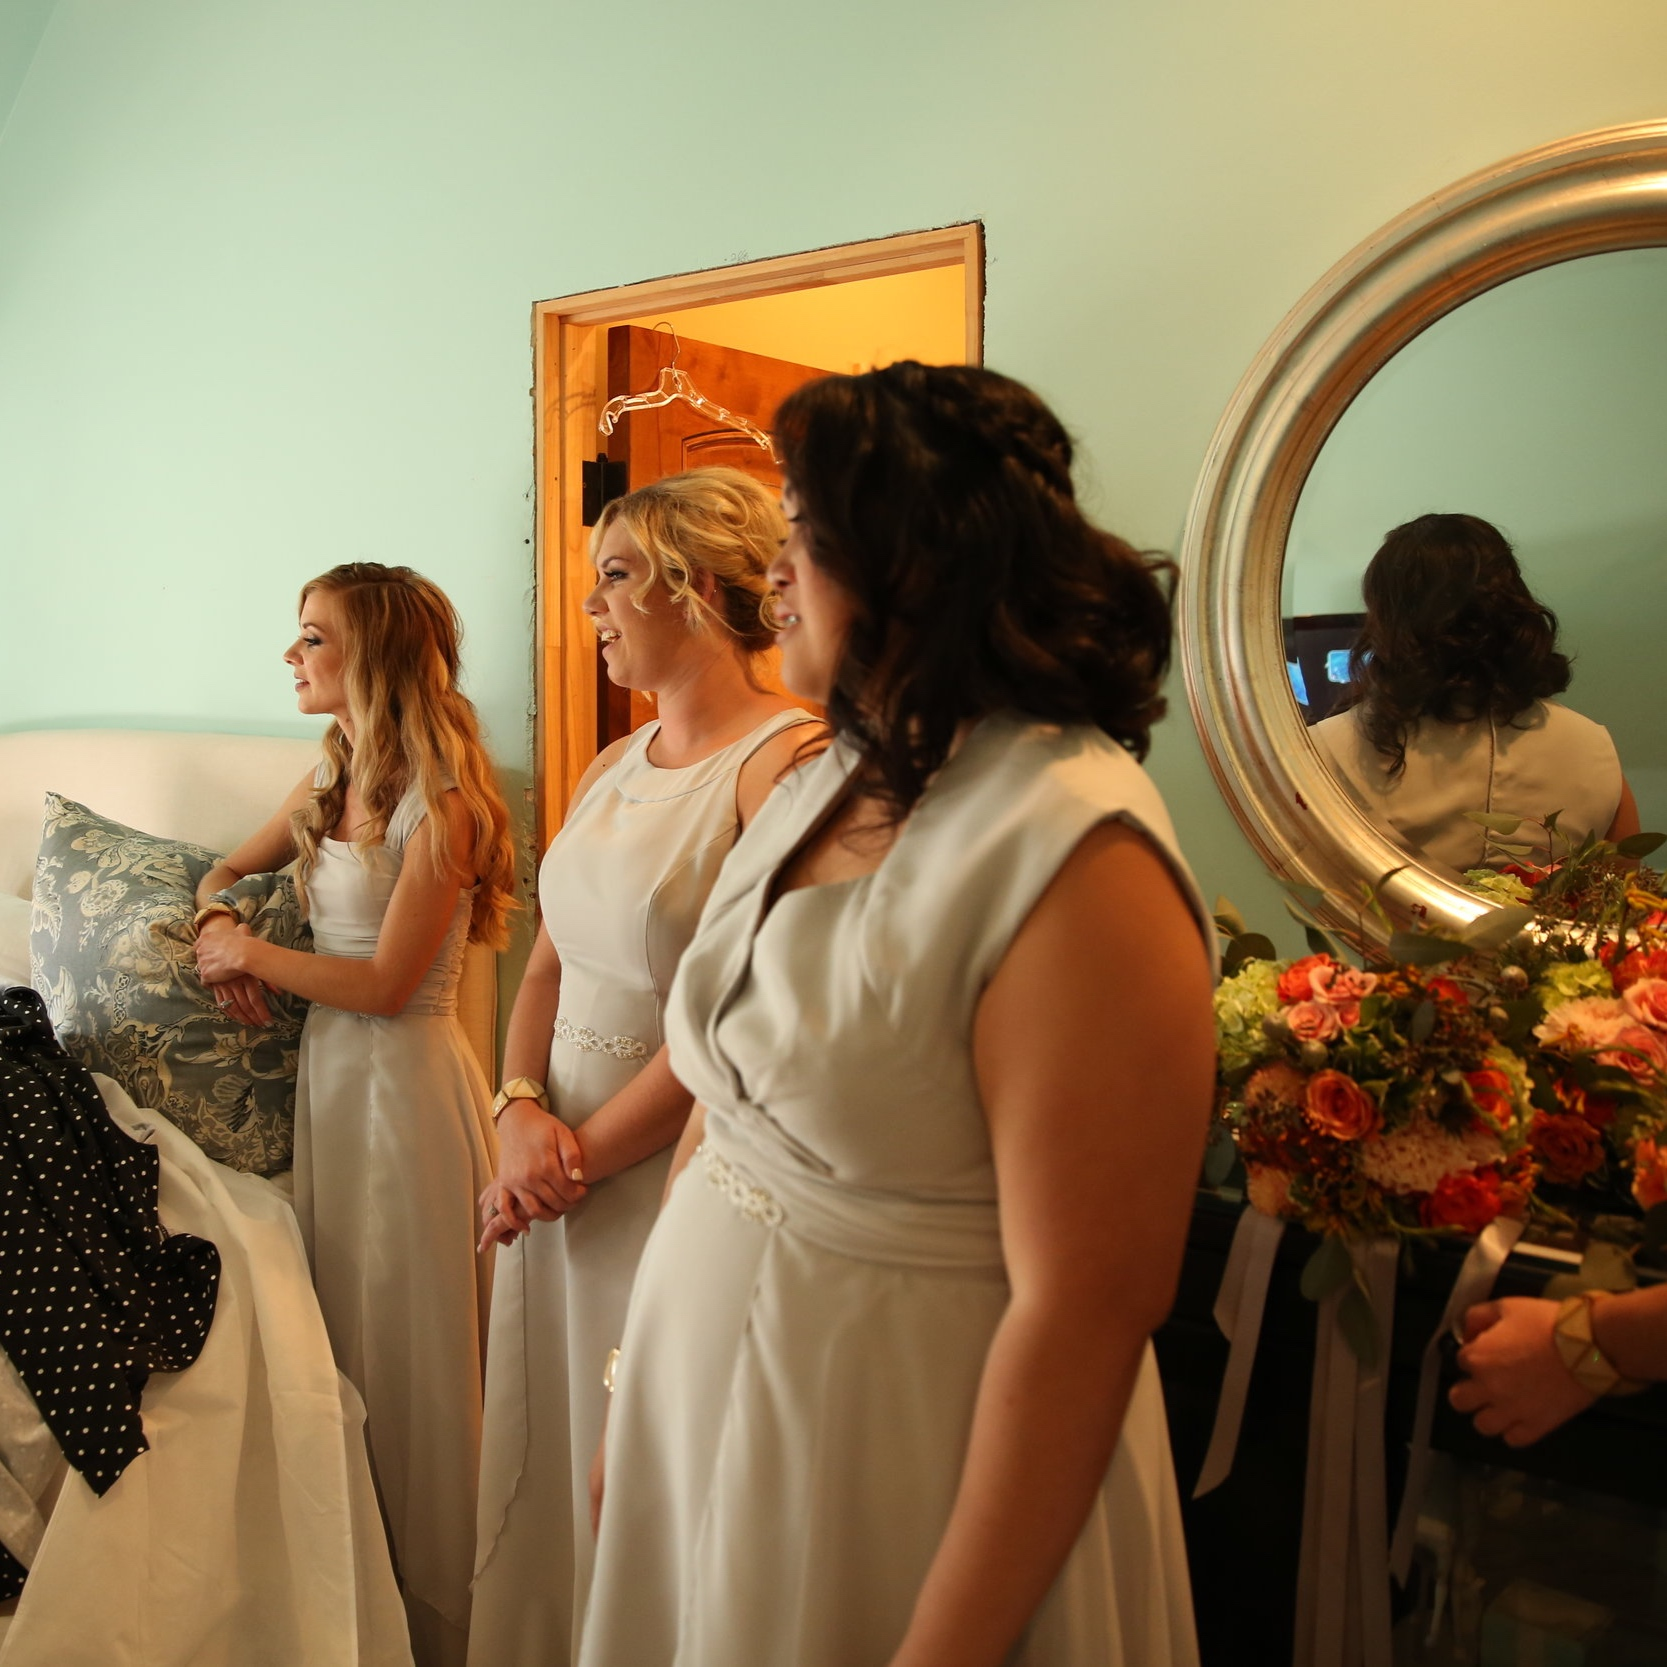 Bridesmaids gaze at the bride as she puts on her wedding dress while they all get ready for the wedding ceremony.